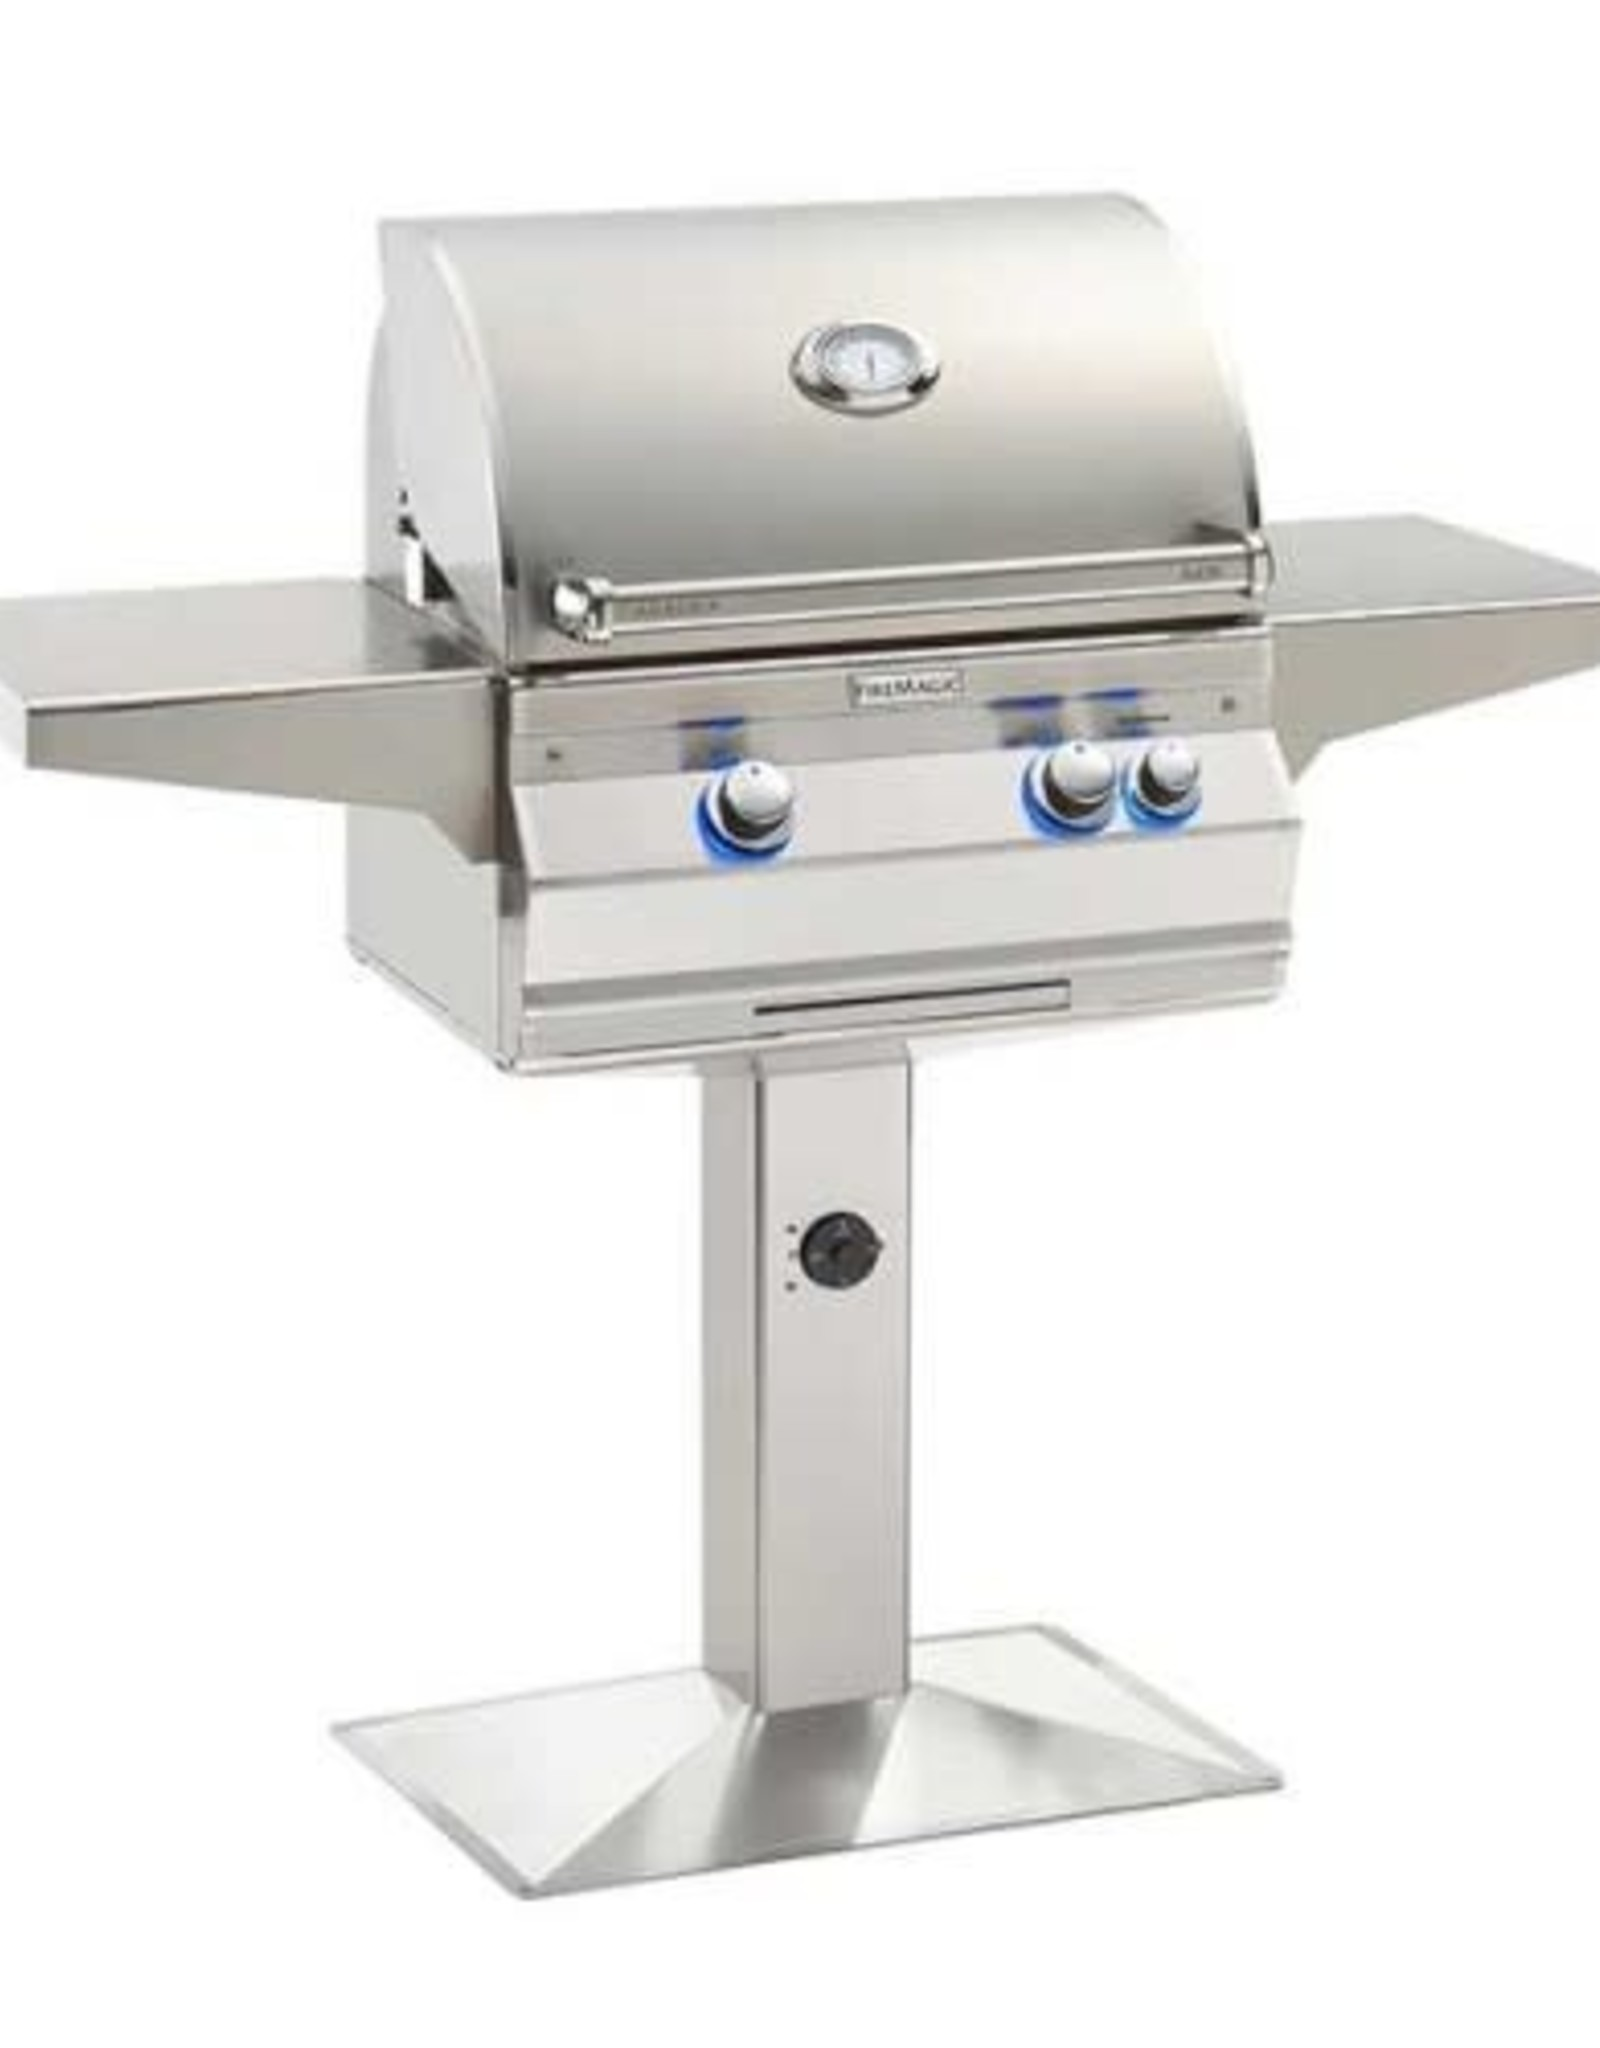 Fire Magic Fire Magic - Aurora A430s 24-inch Patio Post Mount Grill Without Rotisserie